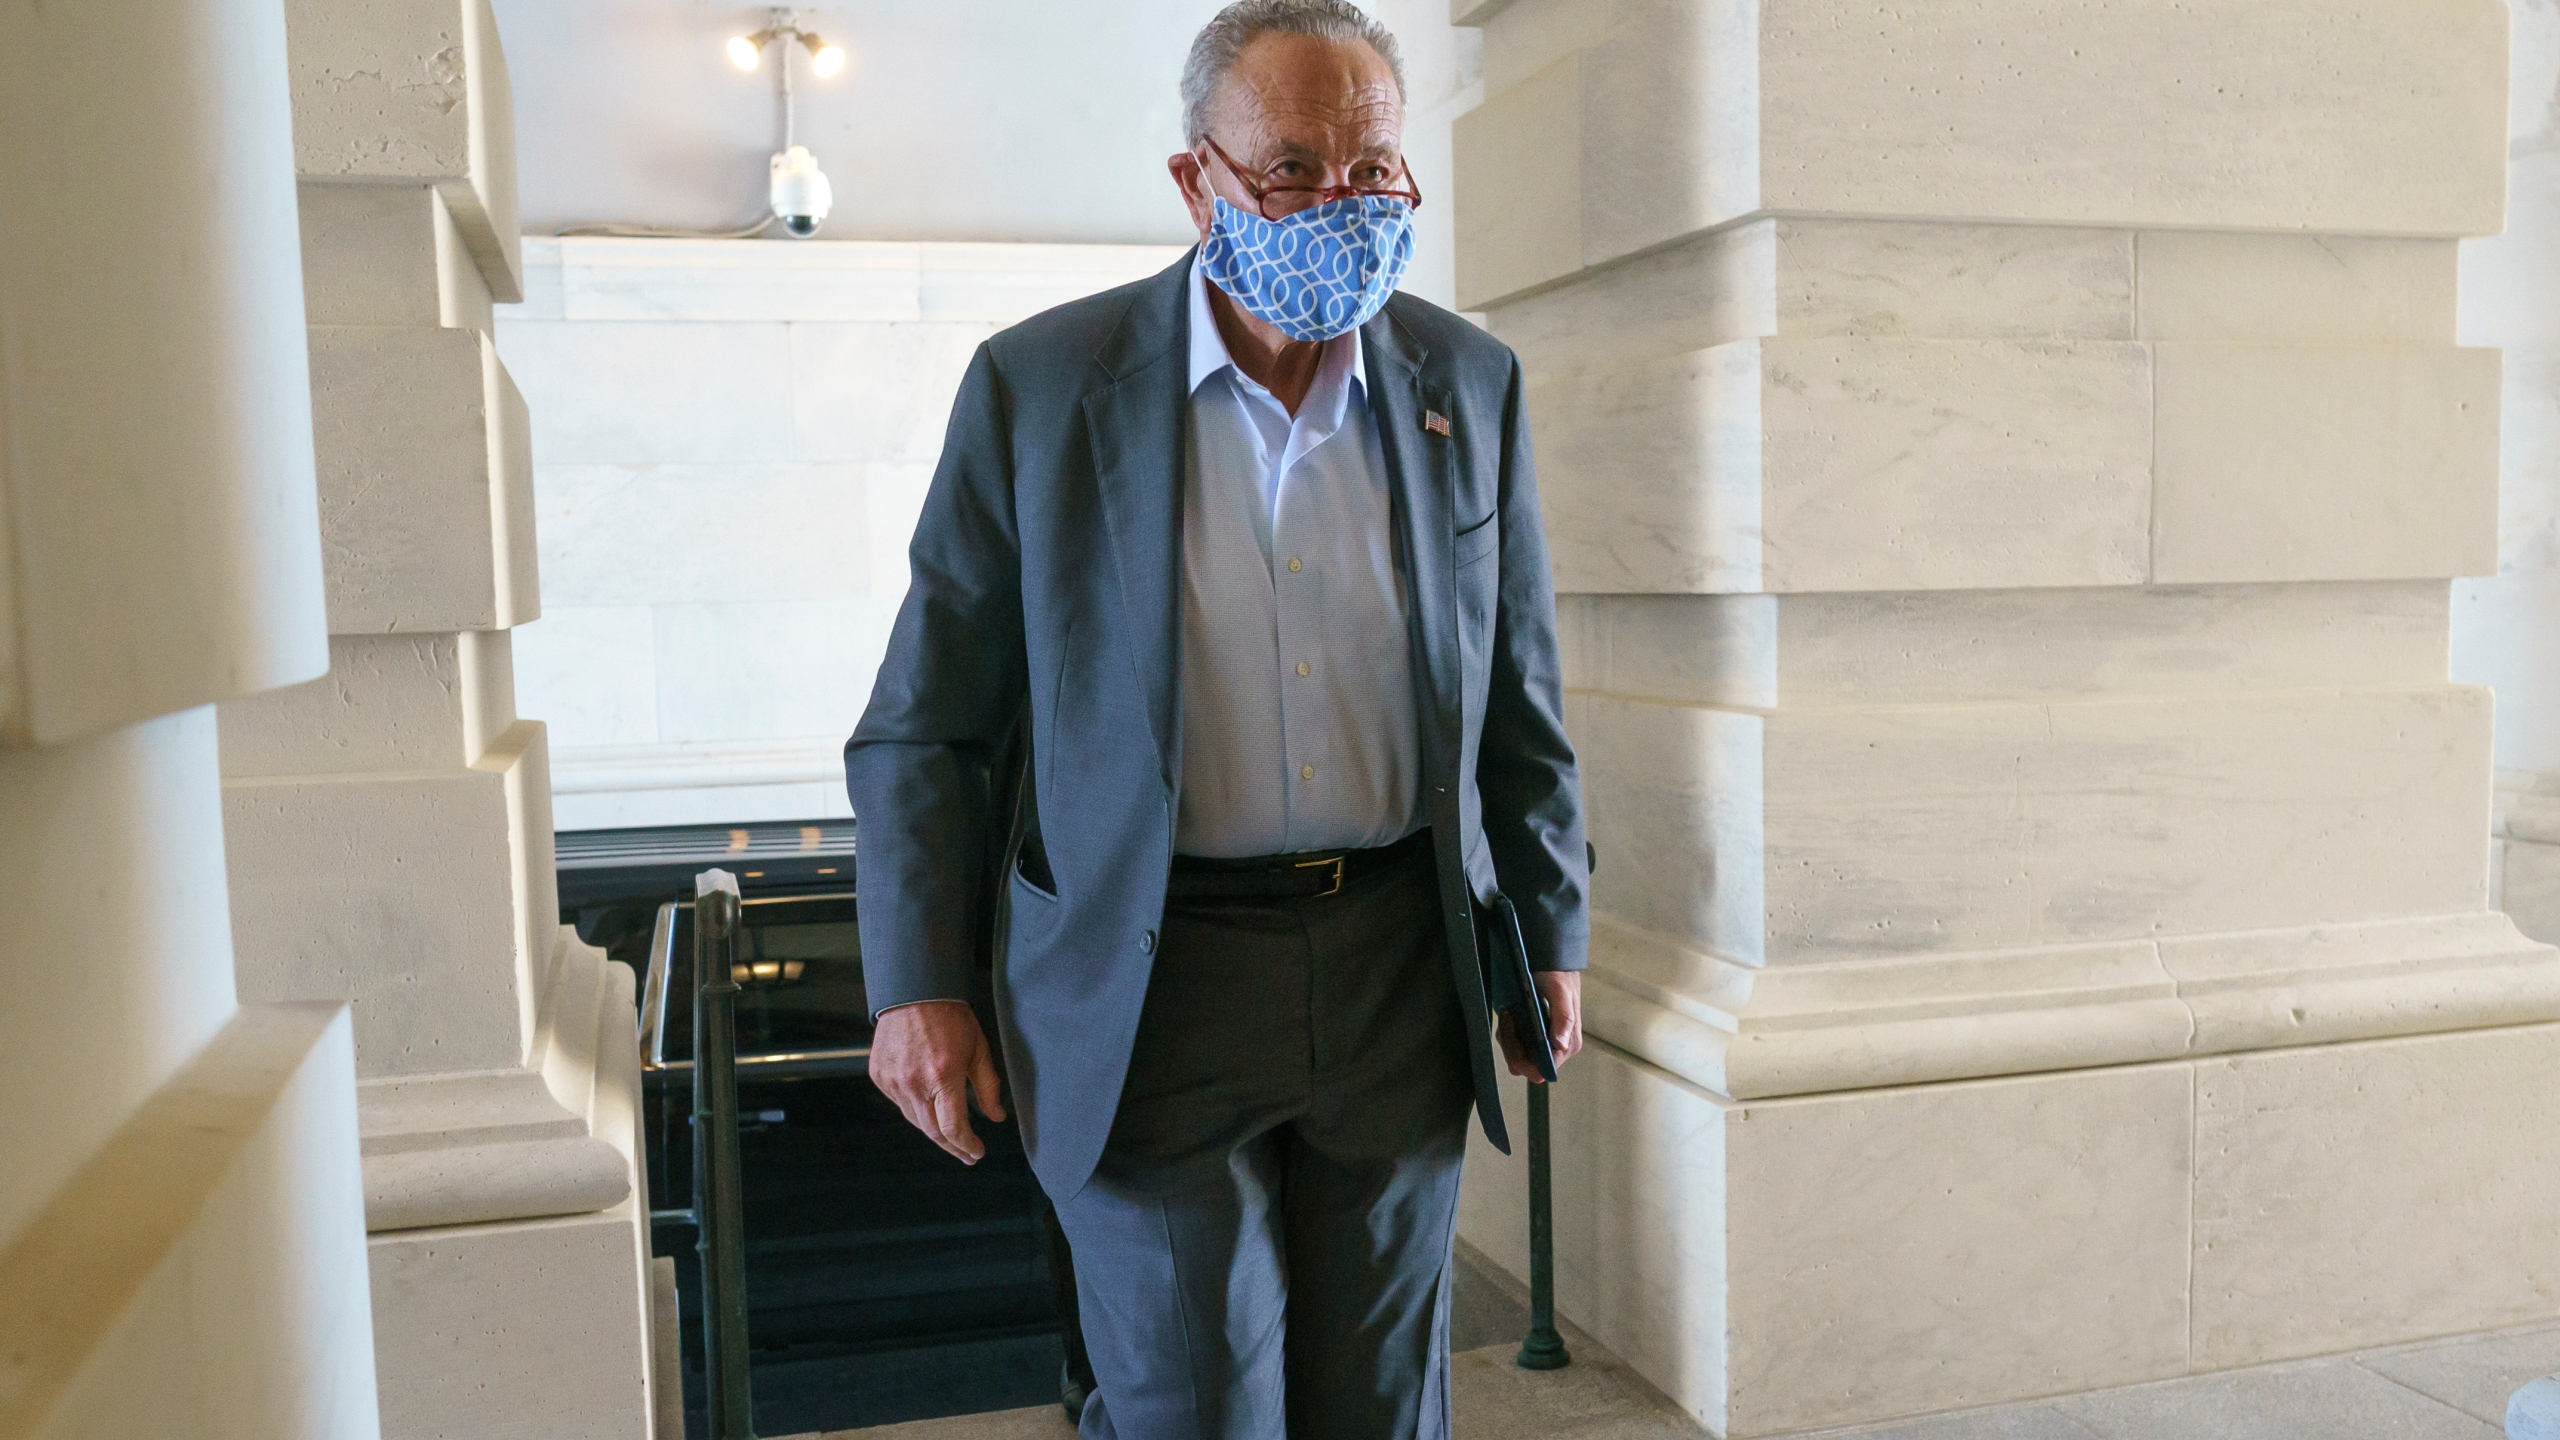 Senate Majority Leader Chuck Schumer, D-N.Y., arrives at the Capitol in Washington, Thursday, Sept. 30, 2021. Schumer is preparing for a morning vote to temporarily fund the government while President Joe Biden appears unable to strike swift agreement with two wavering Democrats, Sen. Joe Manchin, D-W.Va., and Sen. Kyrsten Sinema, D-Ariz., over his big $3.5 trillion government overhaul. (AP Photo/J. Scott Applewhite)